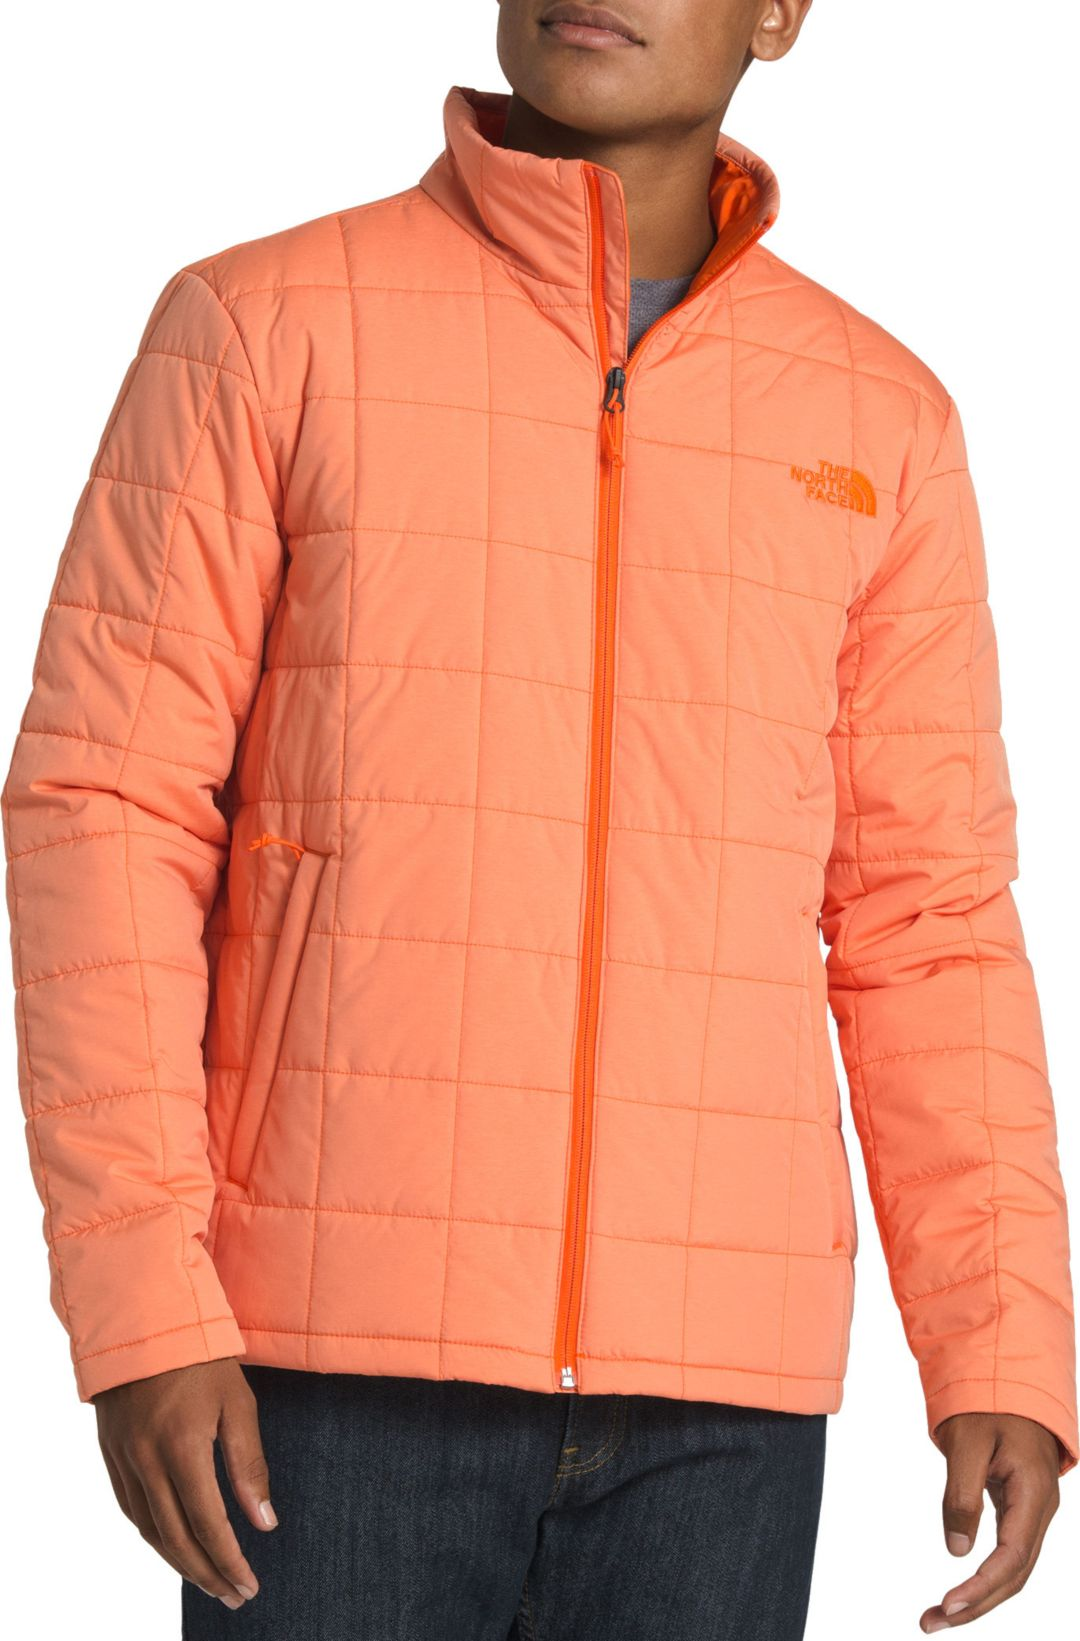 0199f6dfc The North Face Men's Harway Insulated Jacket